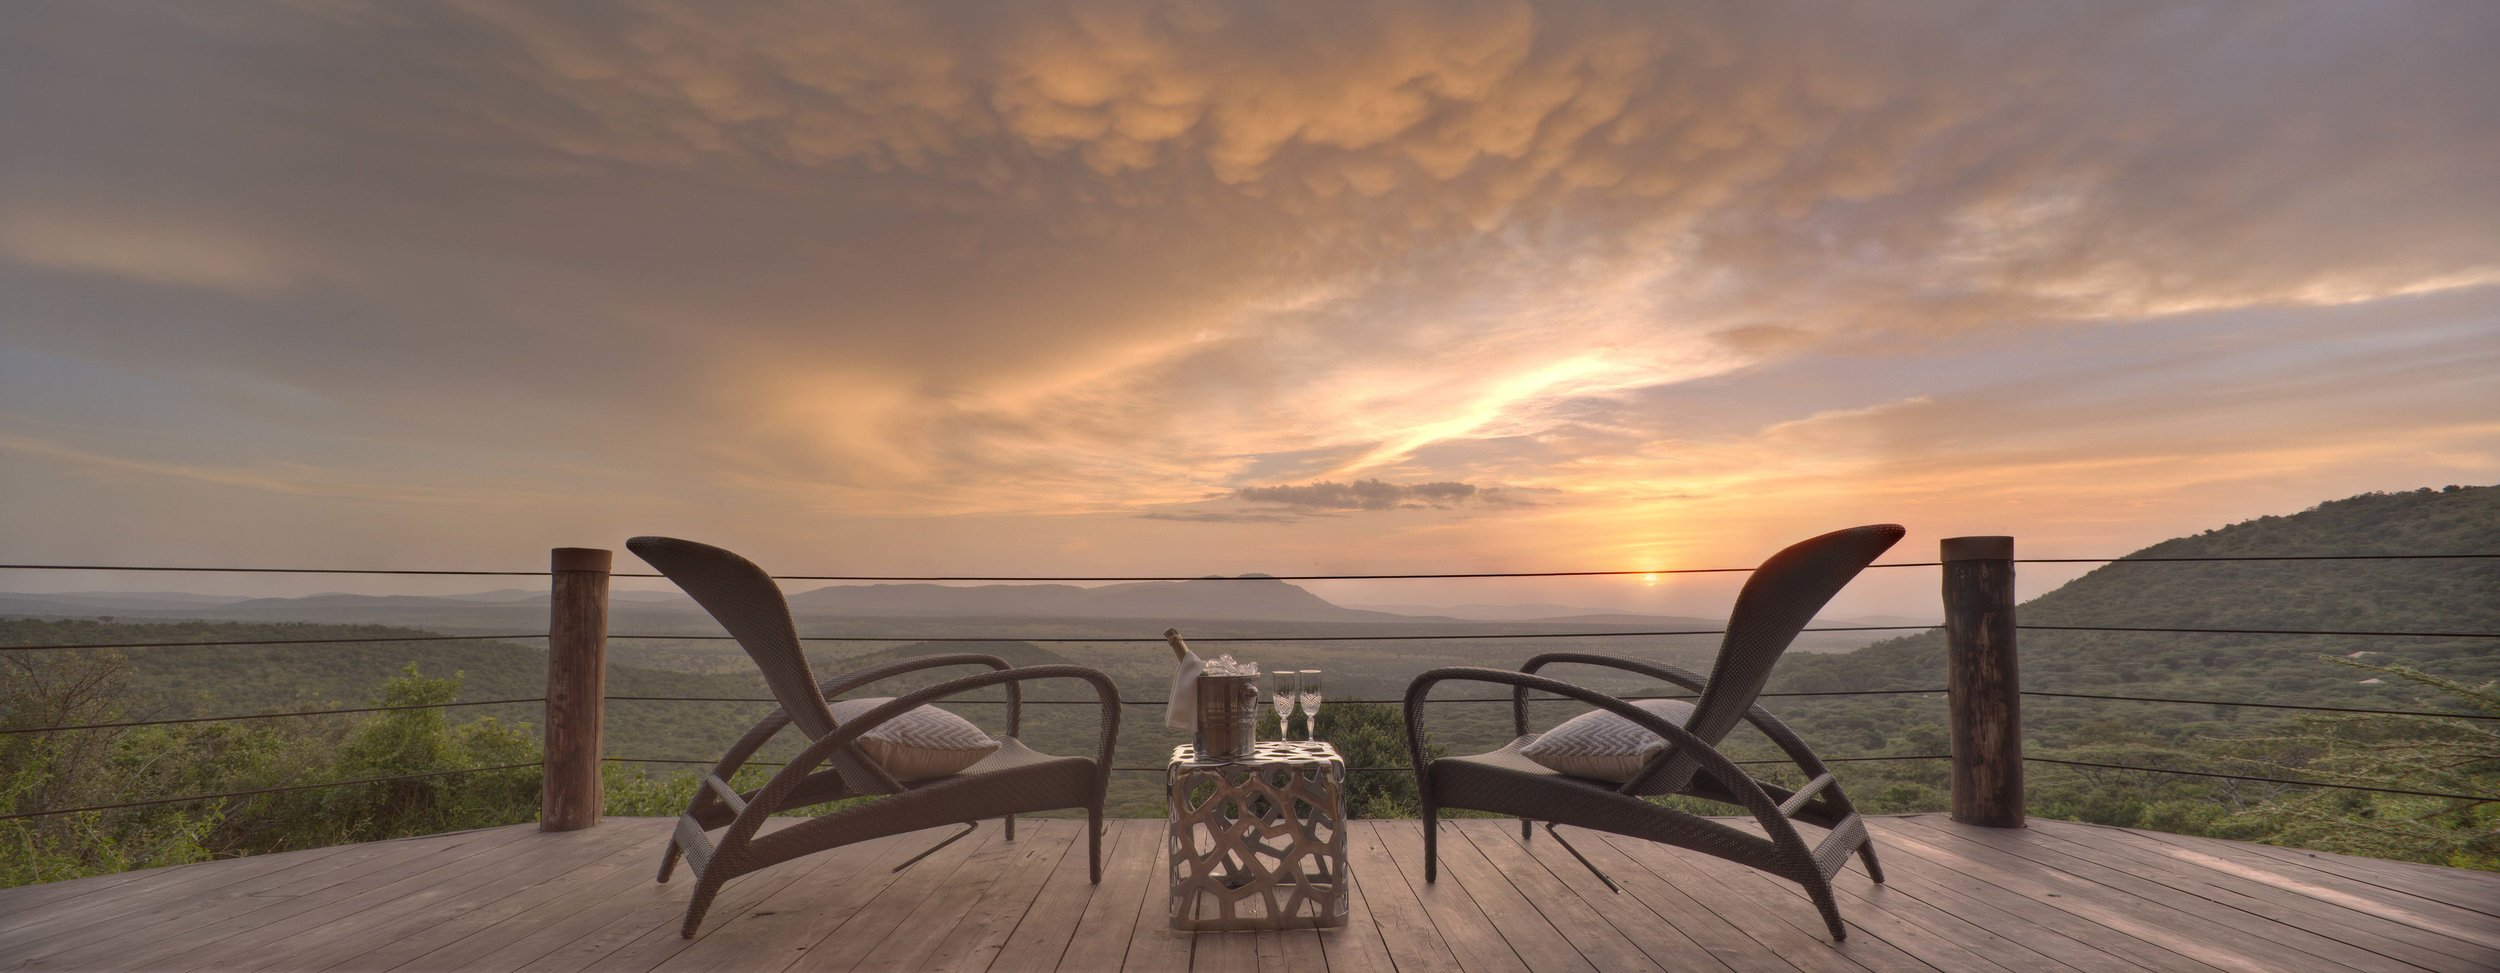 Cottars Private House - Views from terrace 3.jpg